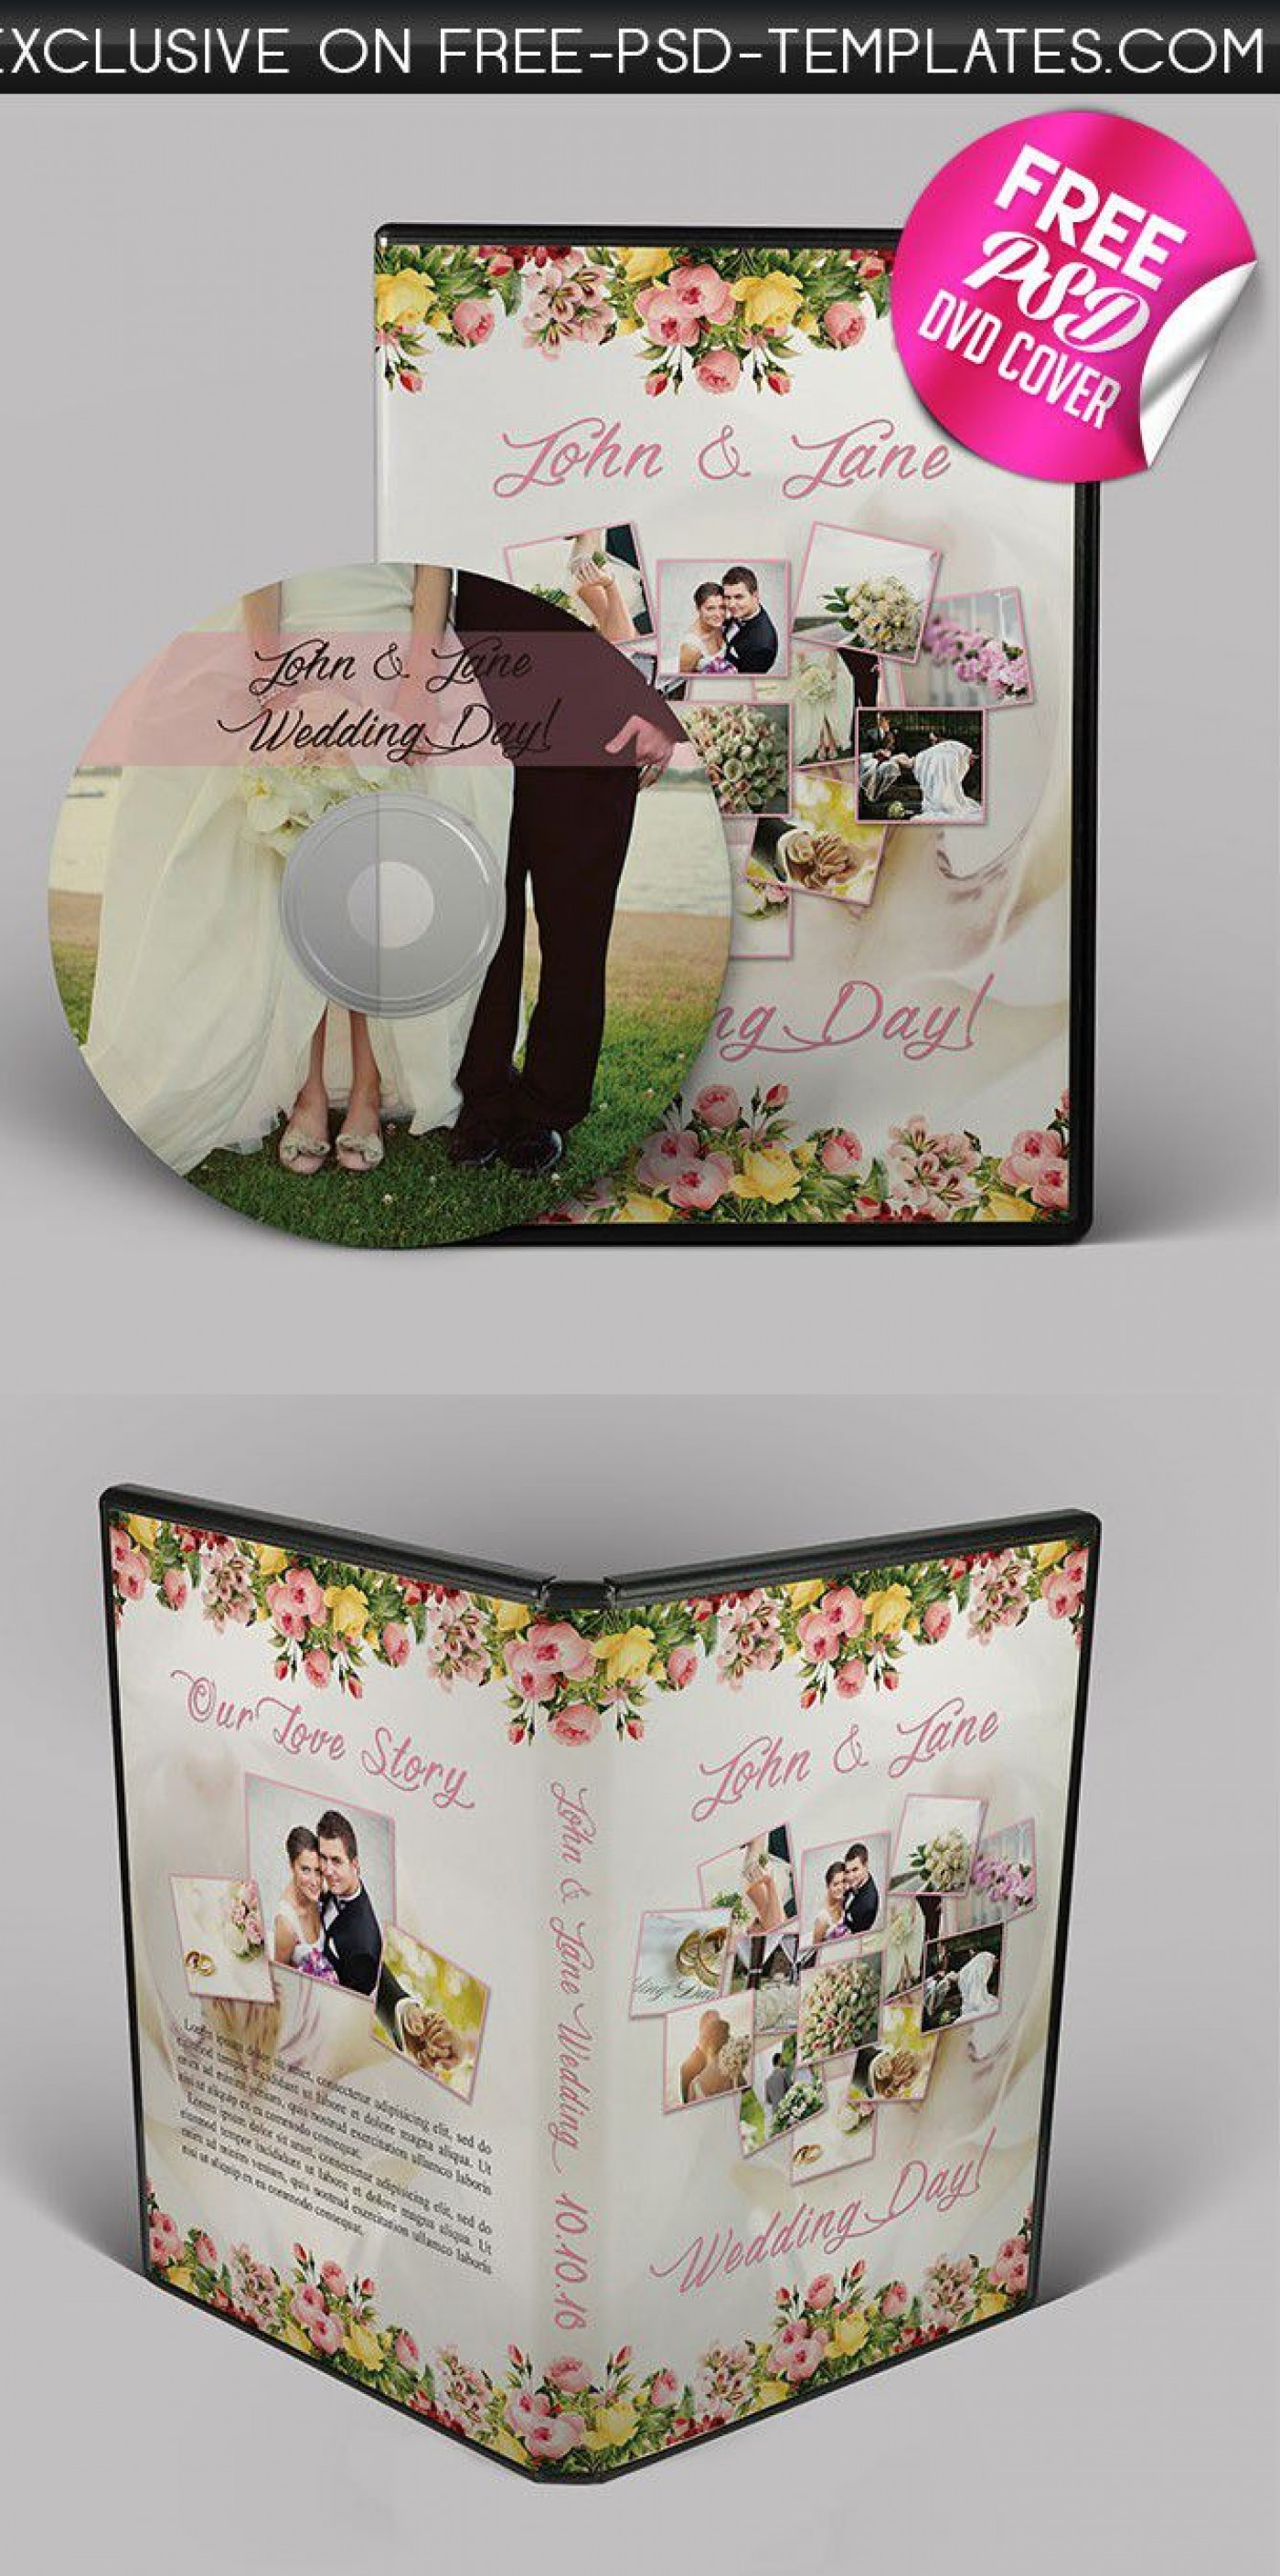 001 Dreaded Wedding Cd Cover Design Template Free Download High Definition 1400